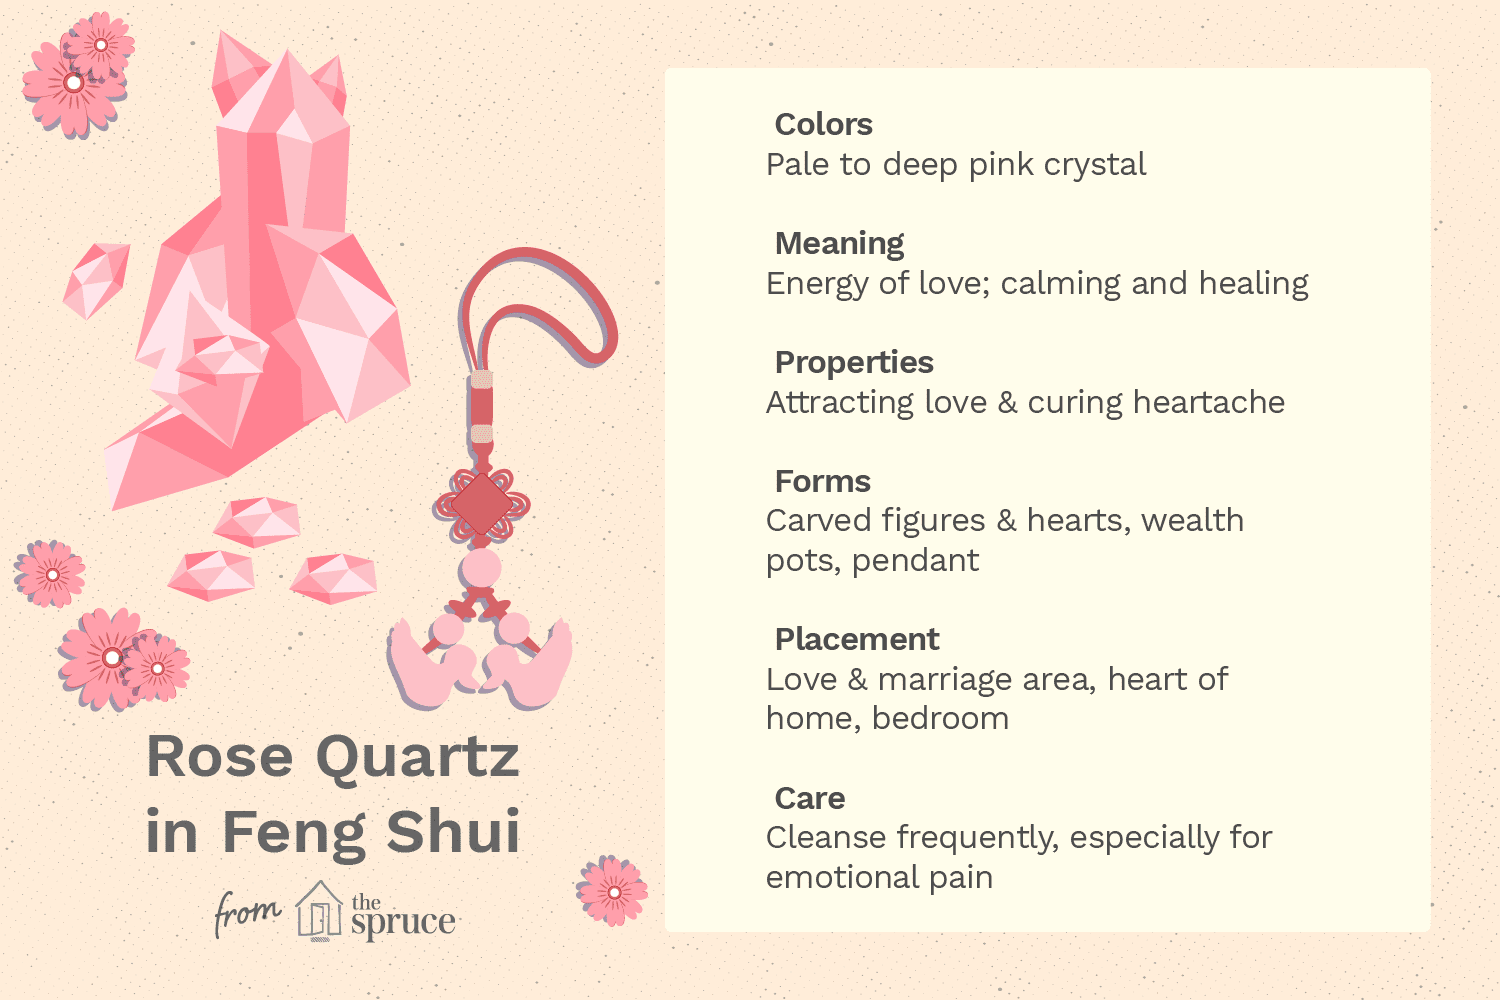 the heart healing properties of rose quartz use in feng shui